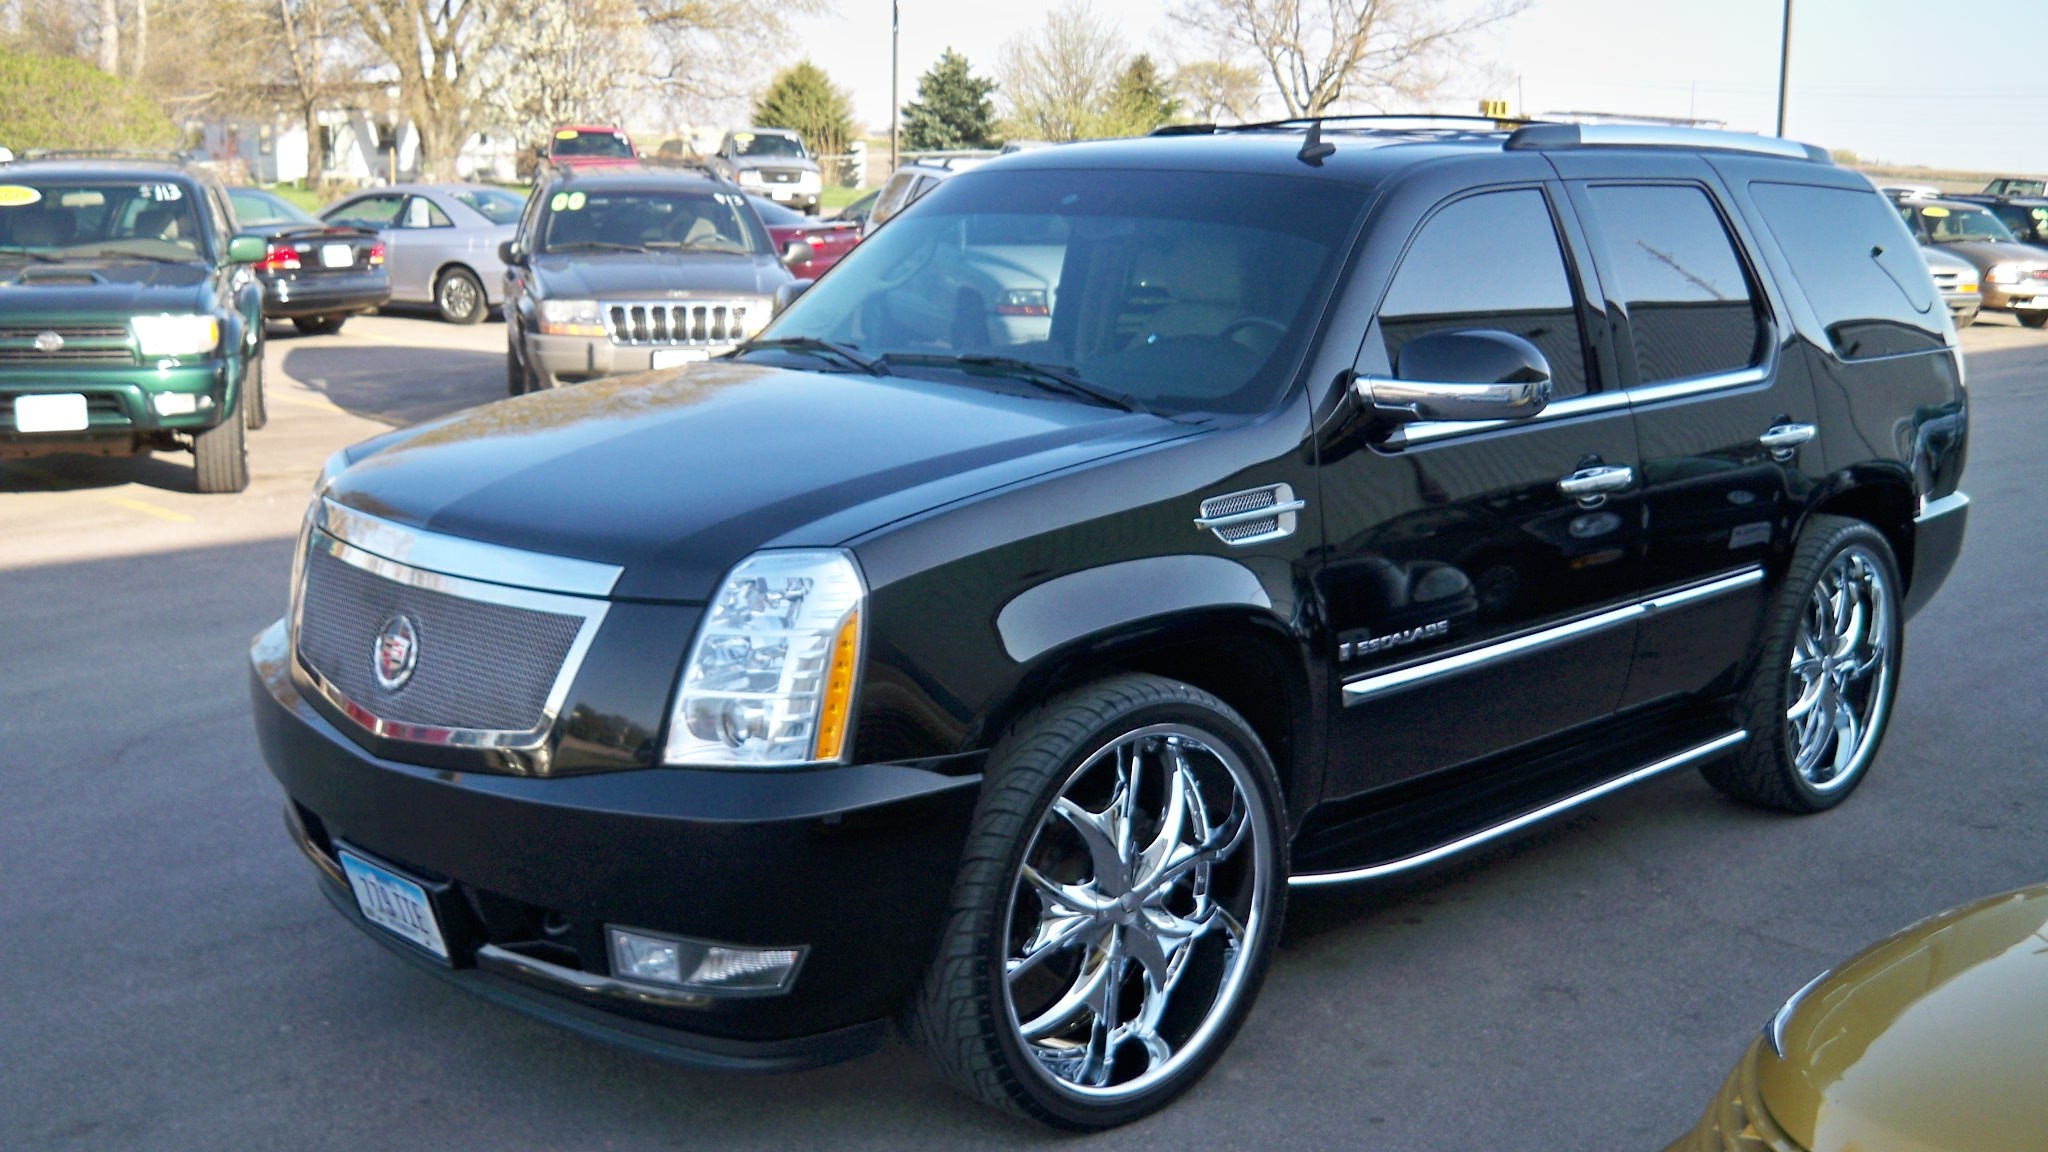 orange26s 2007 Cadillac Escalade Specs, Photos, Modification Info at